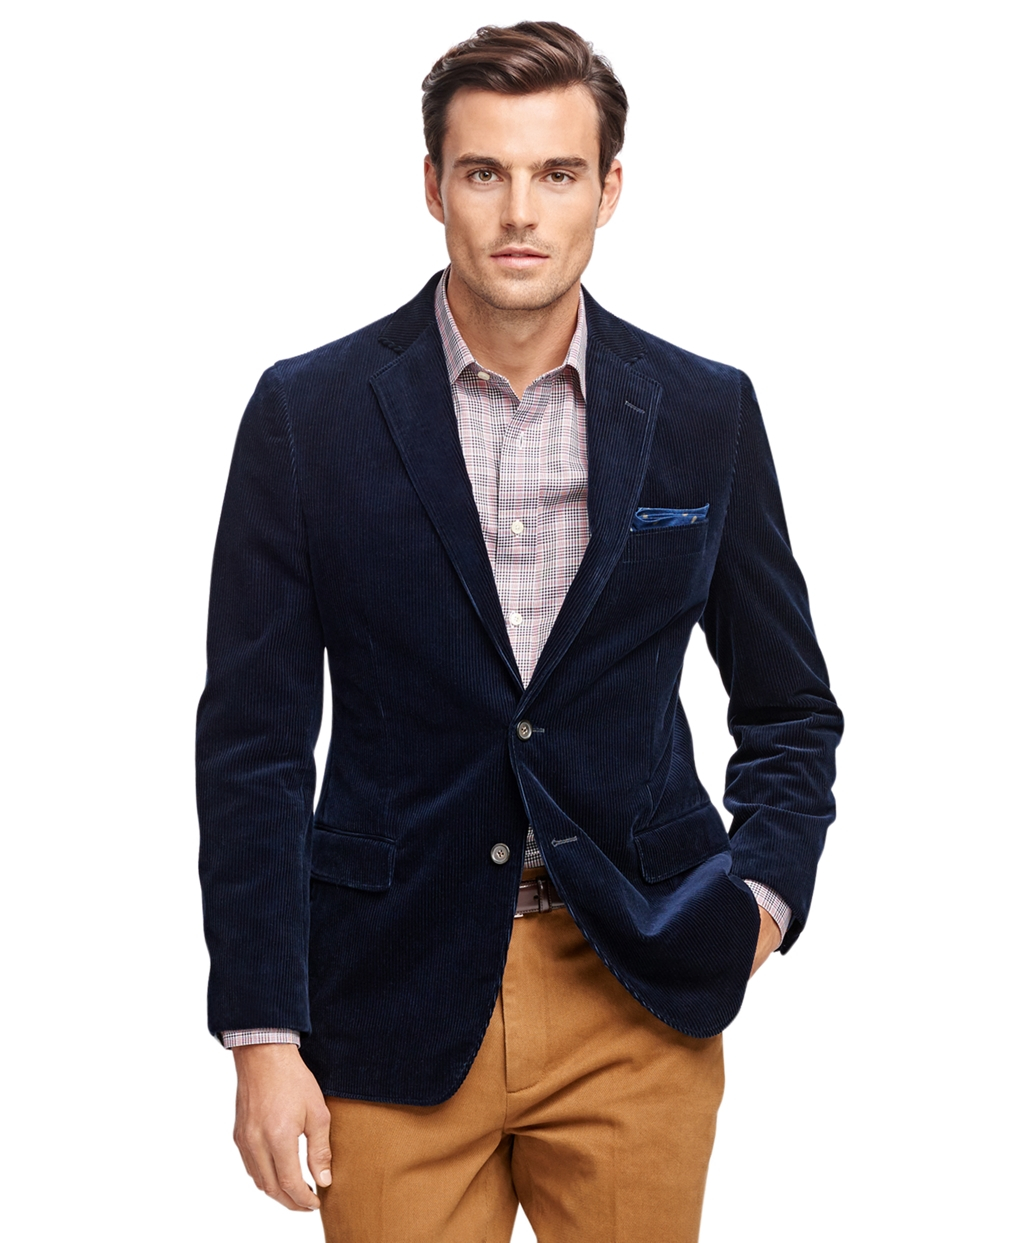 Shop for men's Sportcoats online at trueiupnbp.gq Browse the latest SportCoats styles for men from Jos. A Bank. FREE shipping on orders over $